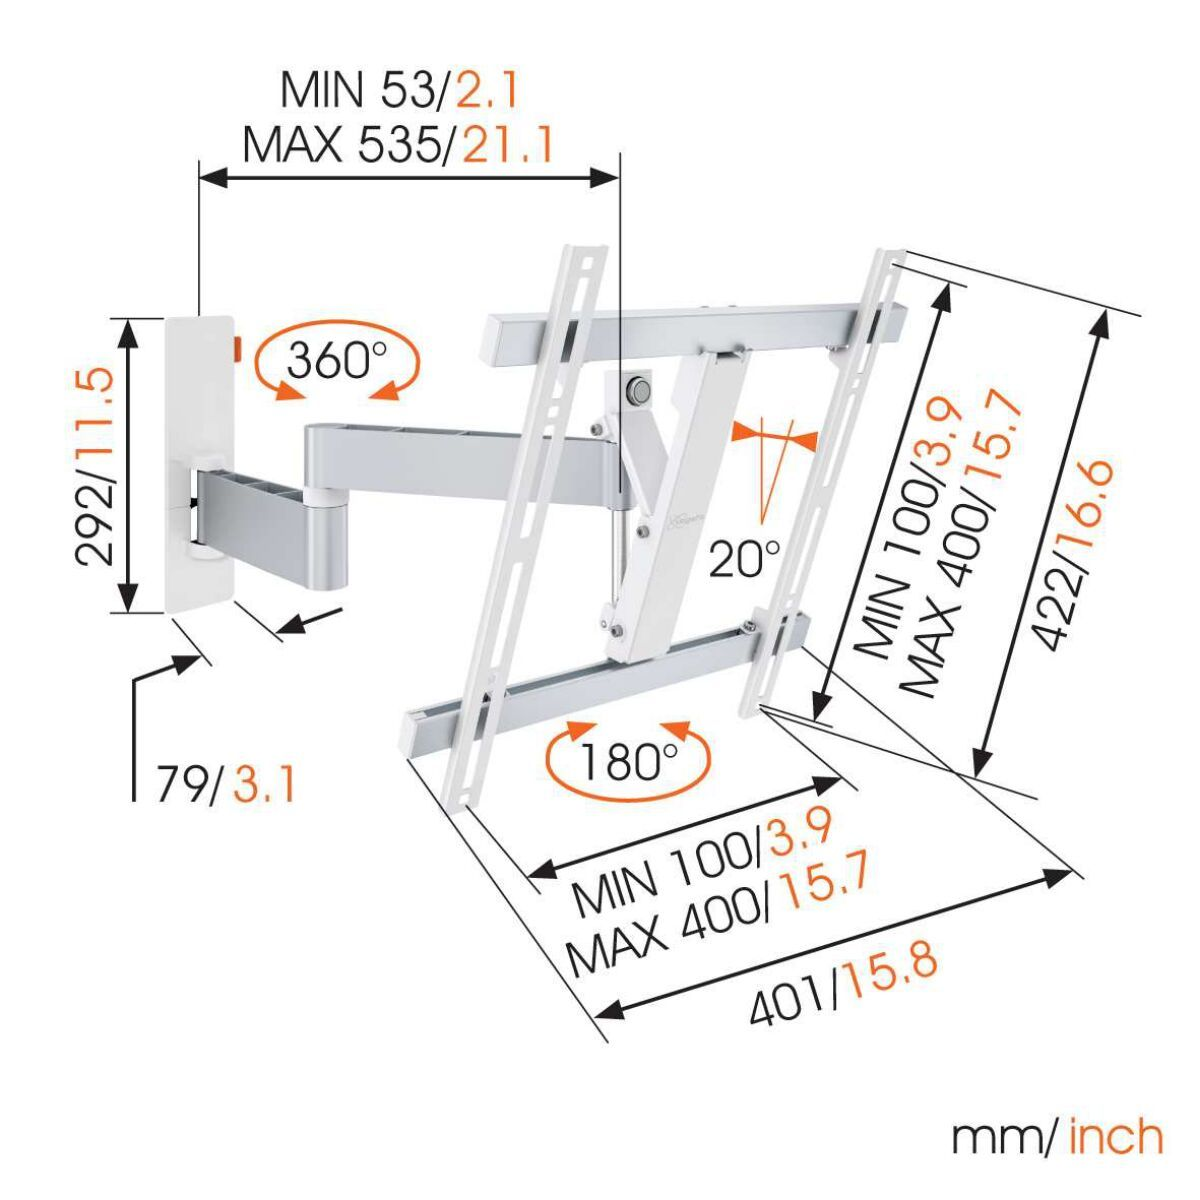 Vogel's WALL 3245 Full-Motion TV Wall Mount (white) - Suitable for 32 up to 55 inch TVs - Full motion (up to 180°) - Tilt up to 20° - Dimensions